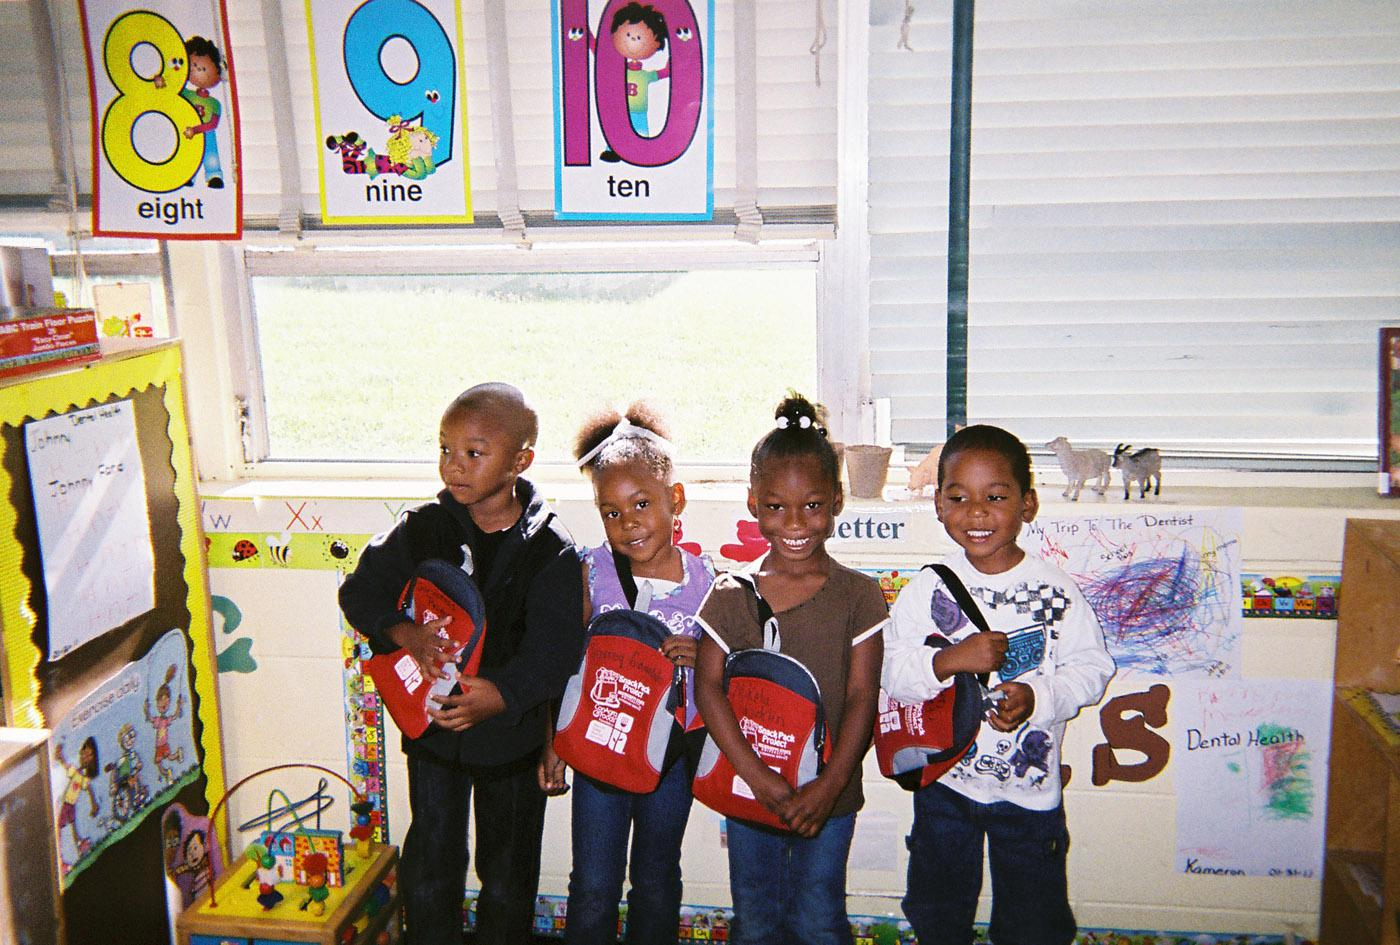 As part of the Snack Pack program, Head Start students were given a small backpack that contained a book, information sheet, and a healthy take-home snack. (Photo by MSU Department of Food Science, Nutrition and Health Promotion/Stacey Johnson Knepple)